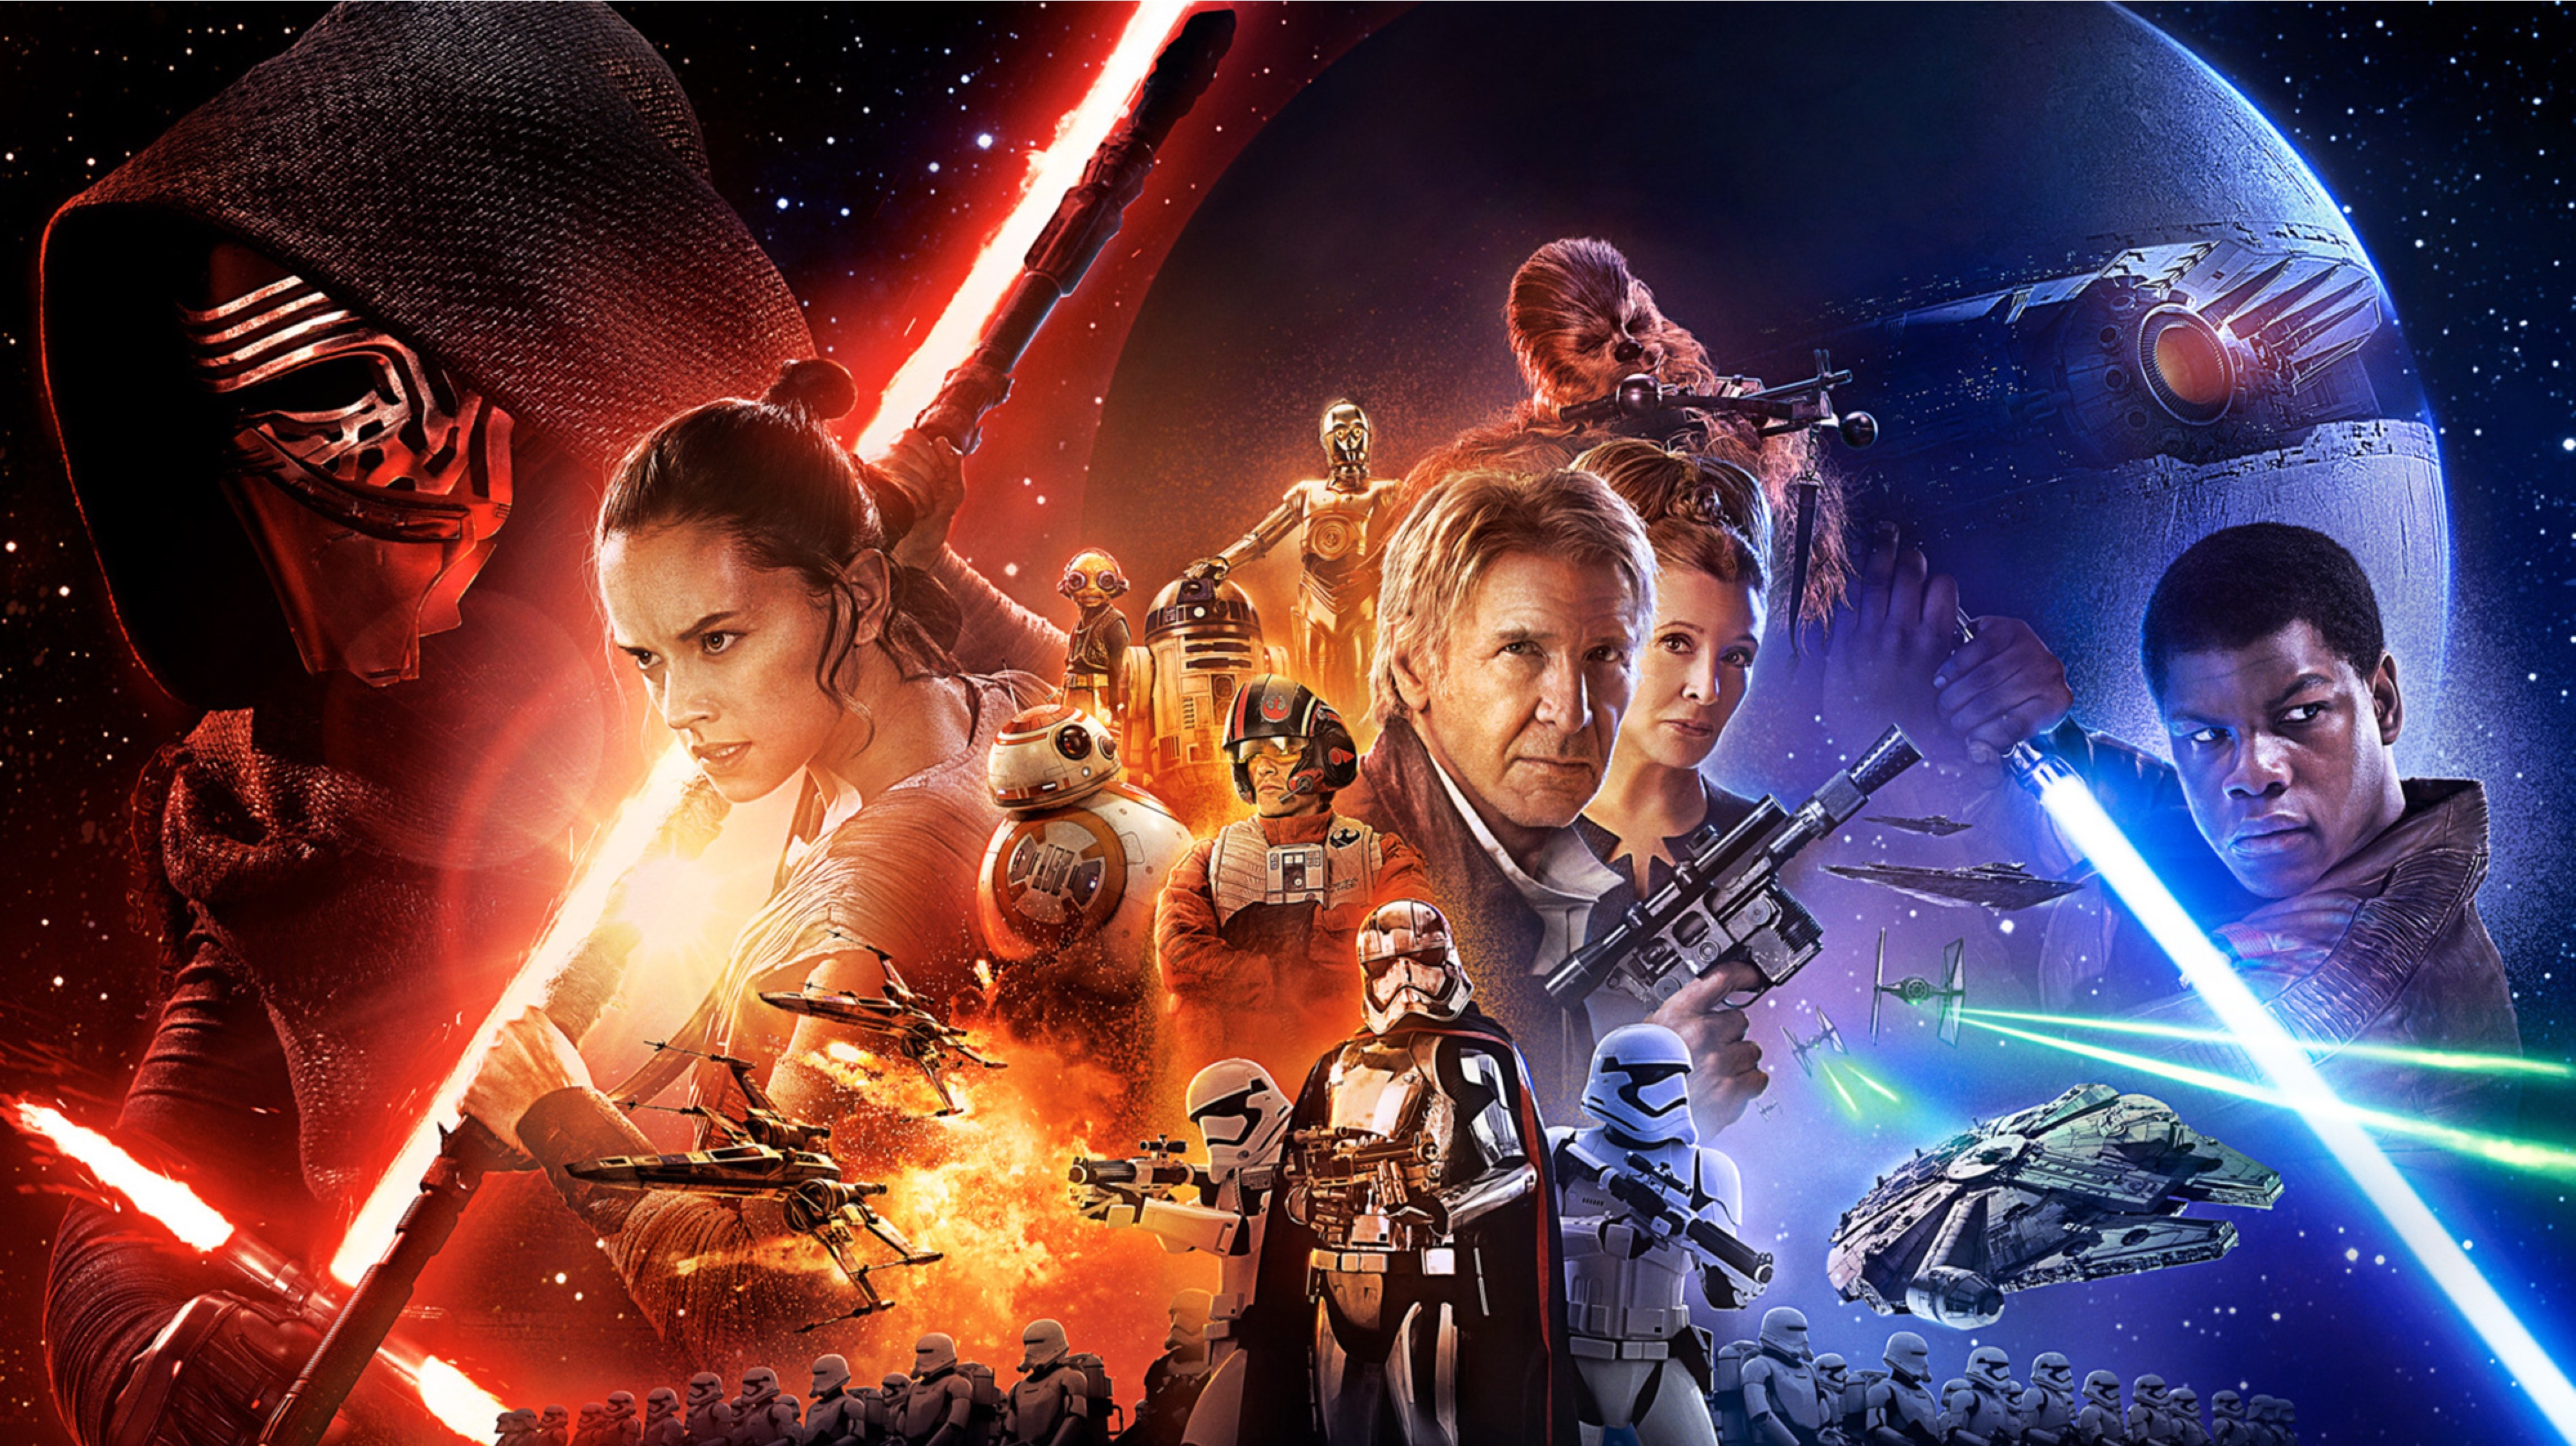 25 Unanswered Star Wars: The Force Awakens Questions